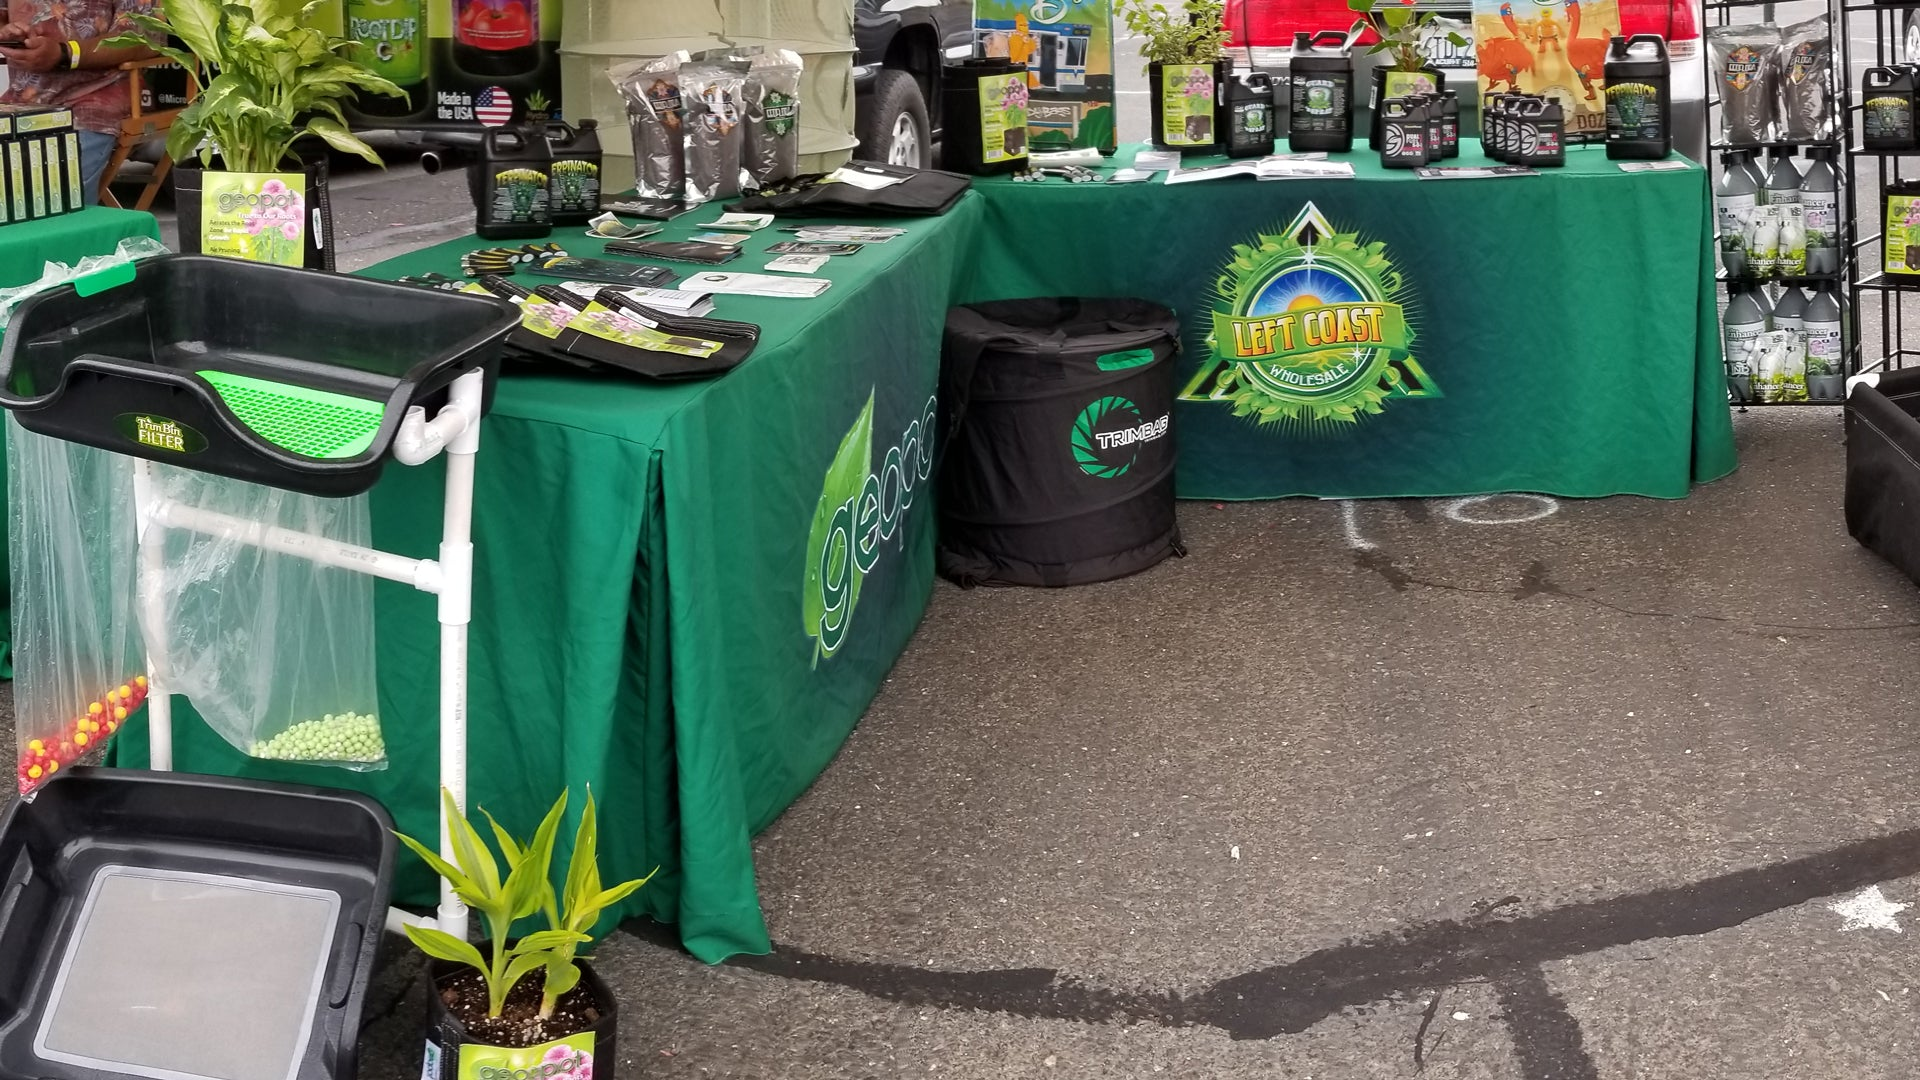 Left Coast Wholesale @ The Tomato Fiesta – Presented by the Soil King